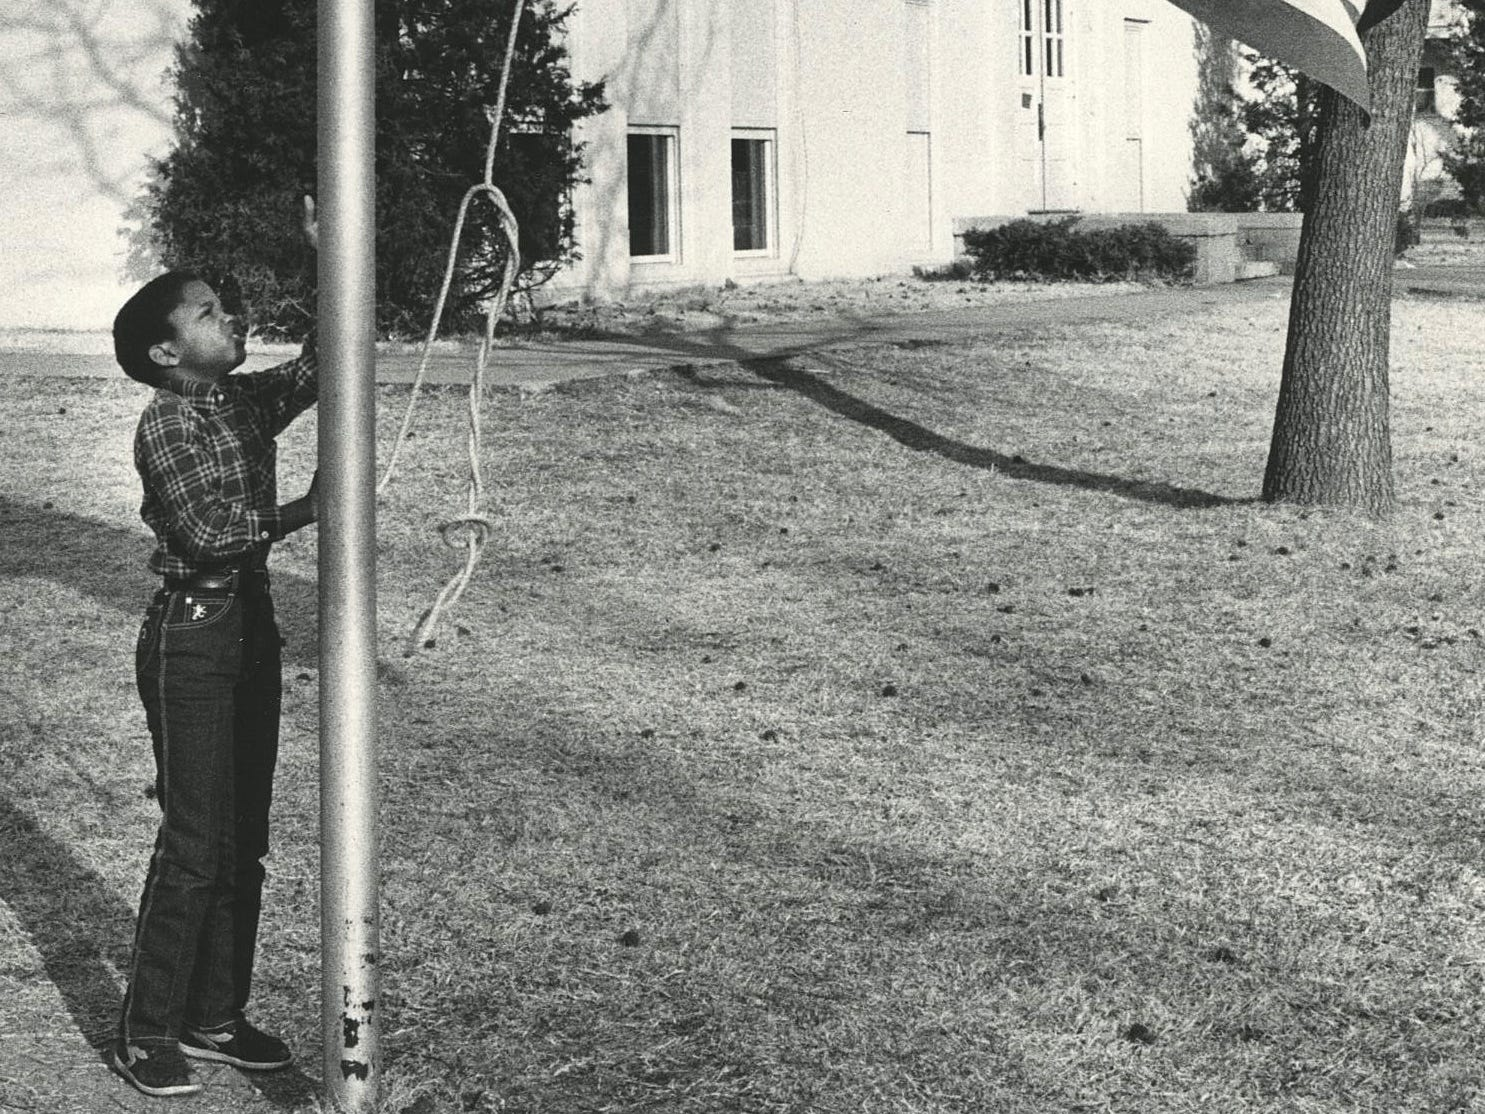 Gerry King, a third-grader at Boyd Elementary School, raises the flag to half staff in 1986.